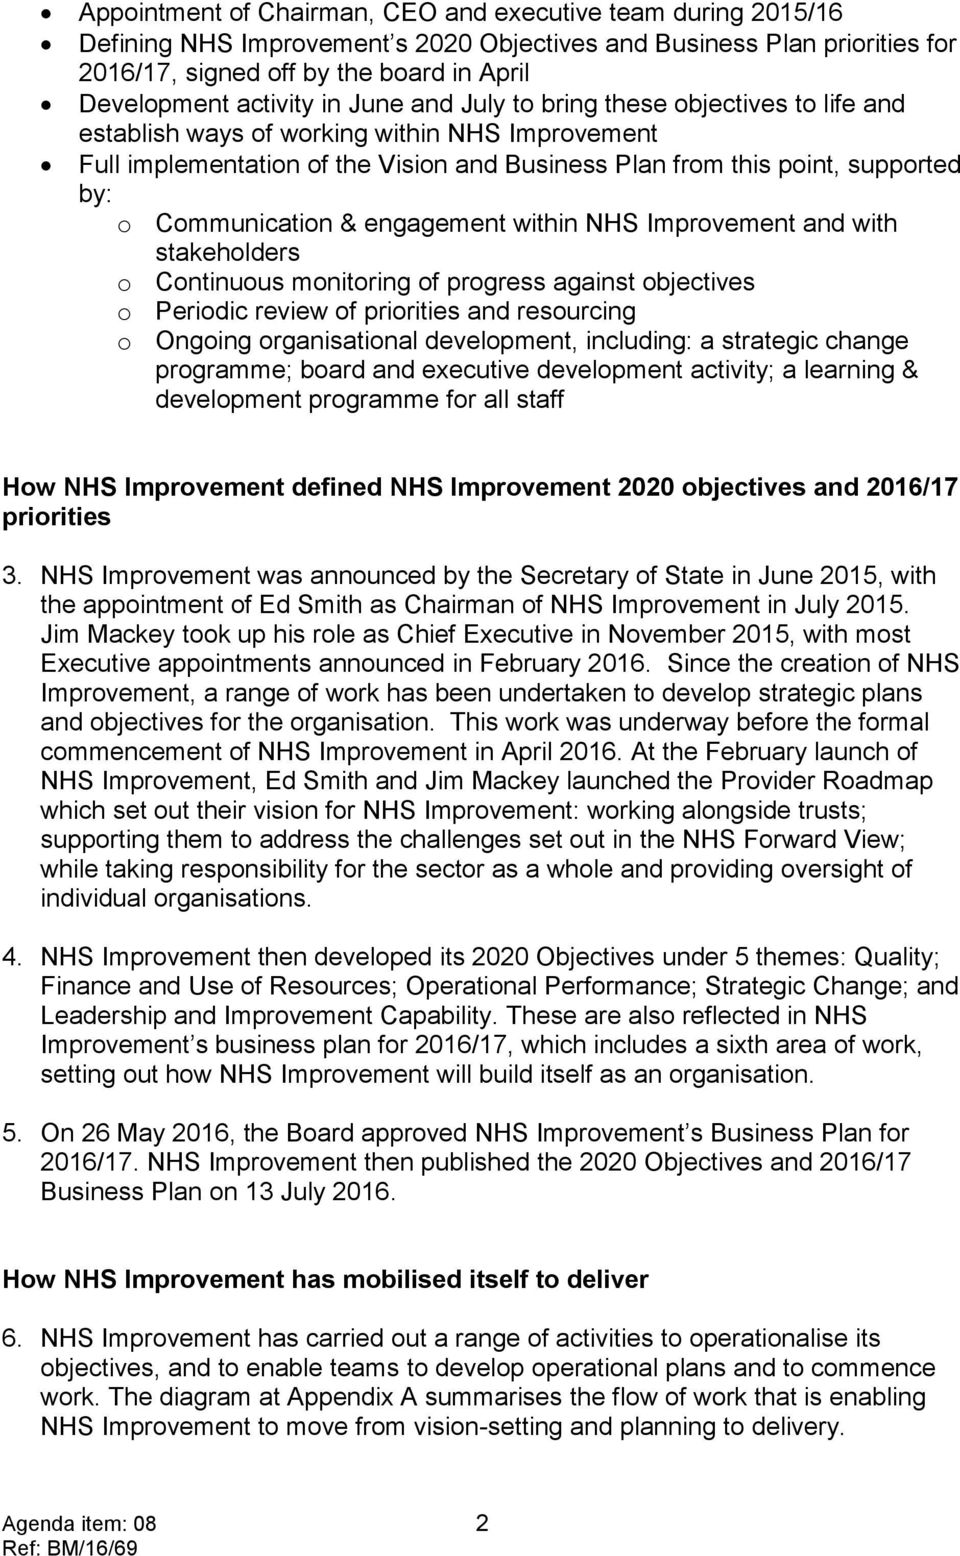 engagement within NHS Improvement and with stakeholders o Continuous monitoring of progress against objectives o Periodic review of priorities and resourcing o Ongoing organisational development,